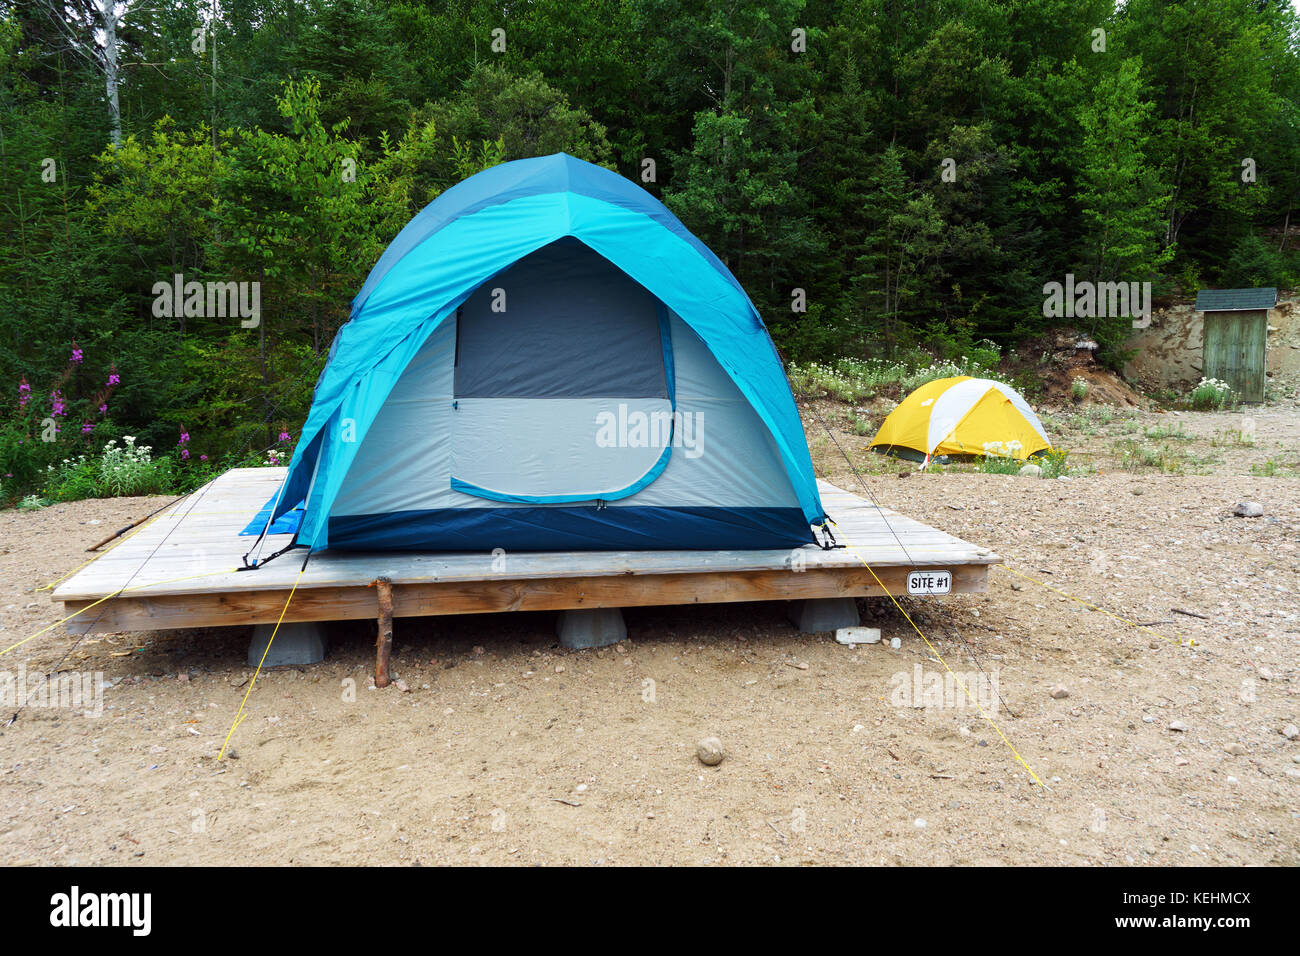 Tent pitched on a wooden platform & Tent pitched on a wooden platform Stock Photo Royalty Free Image ...